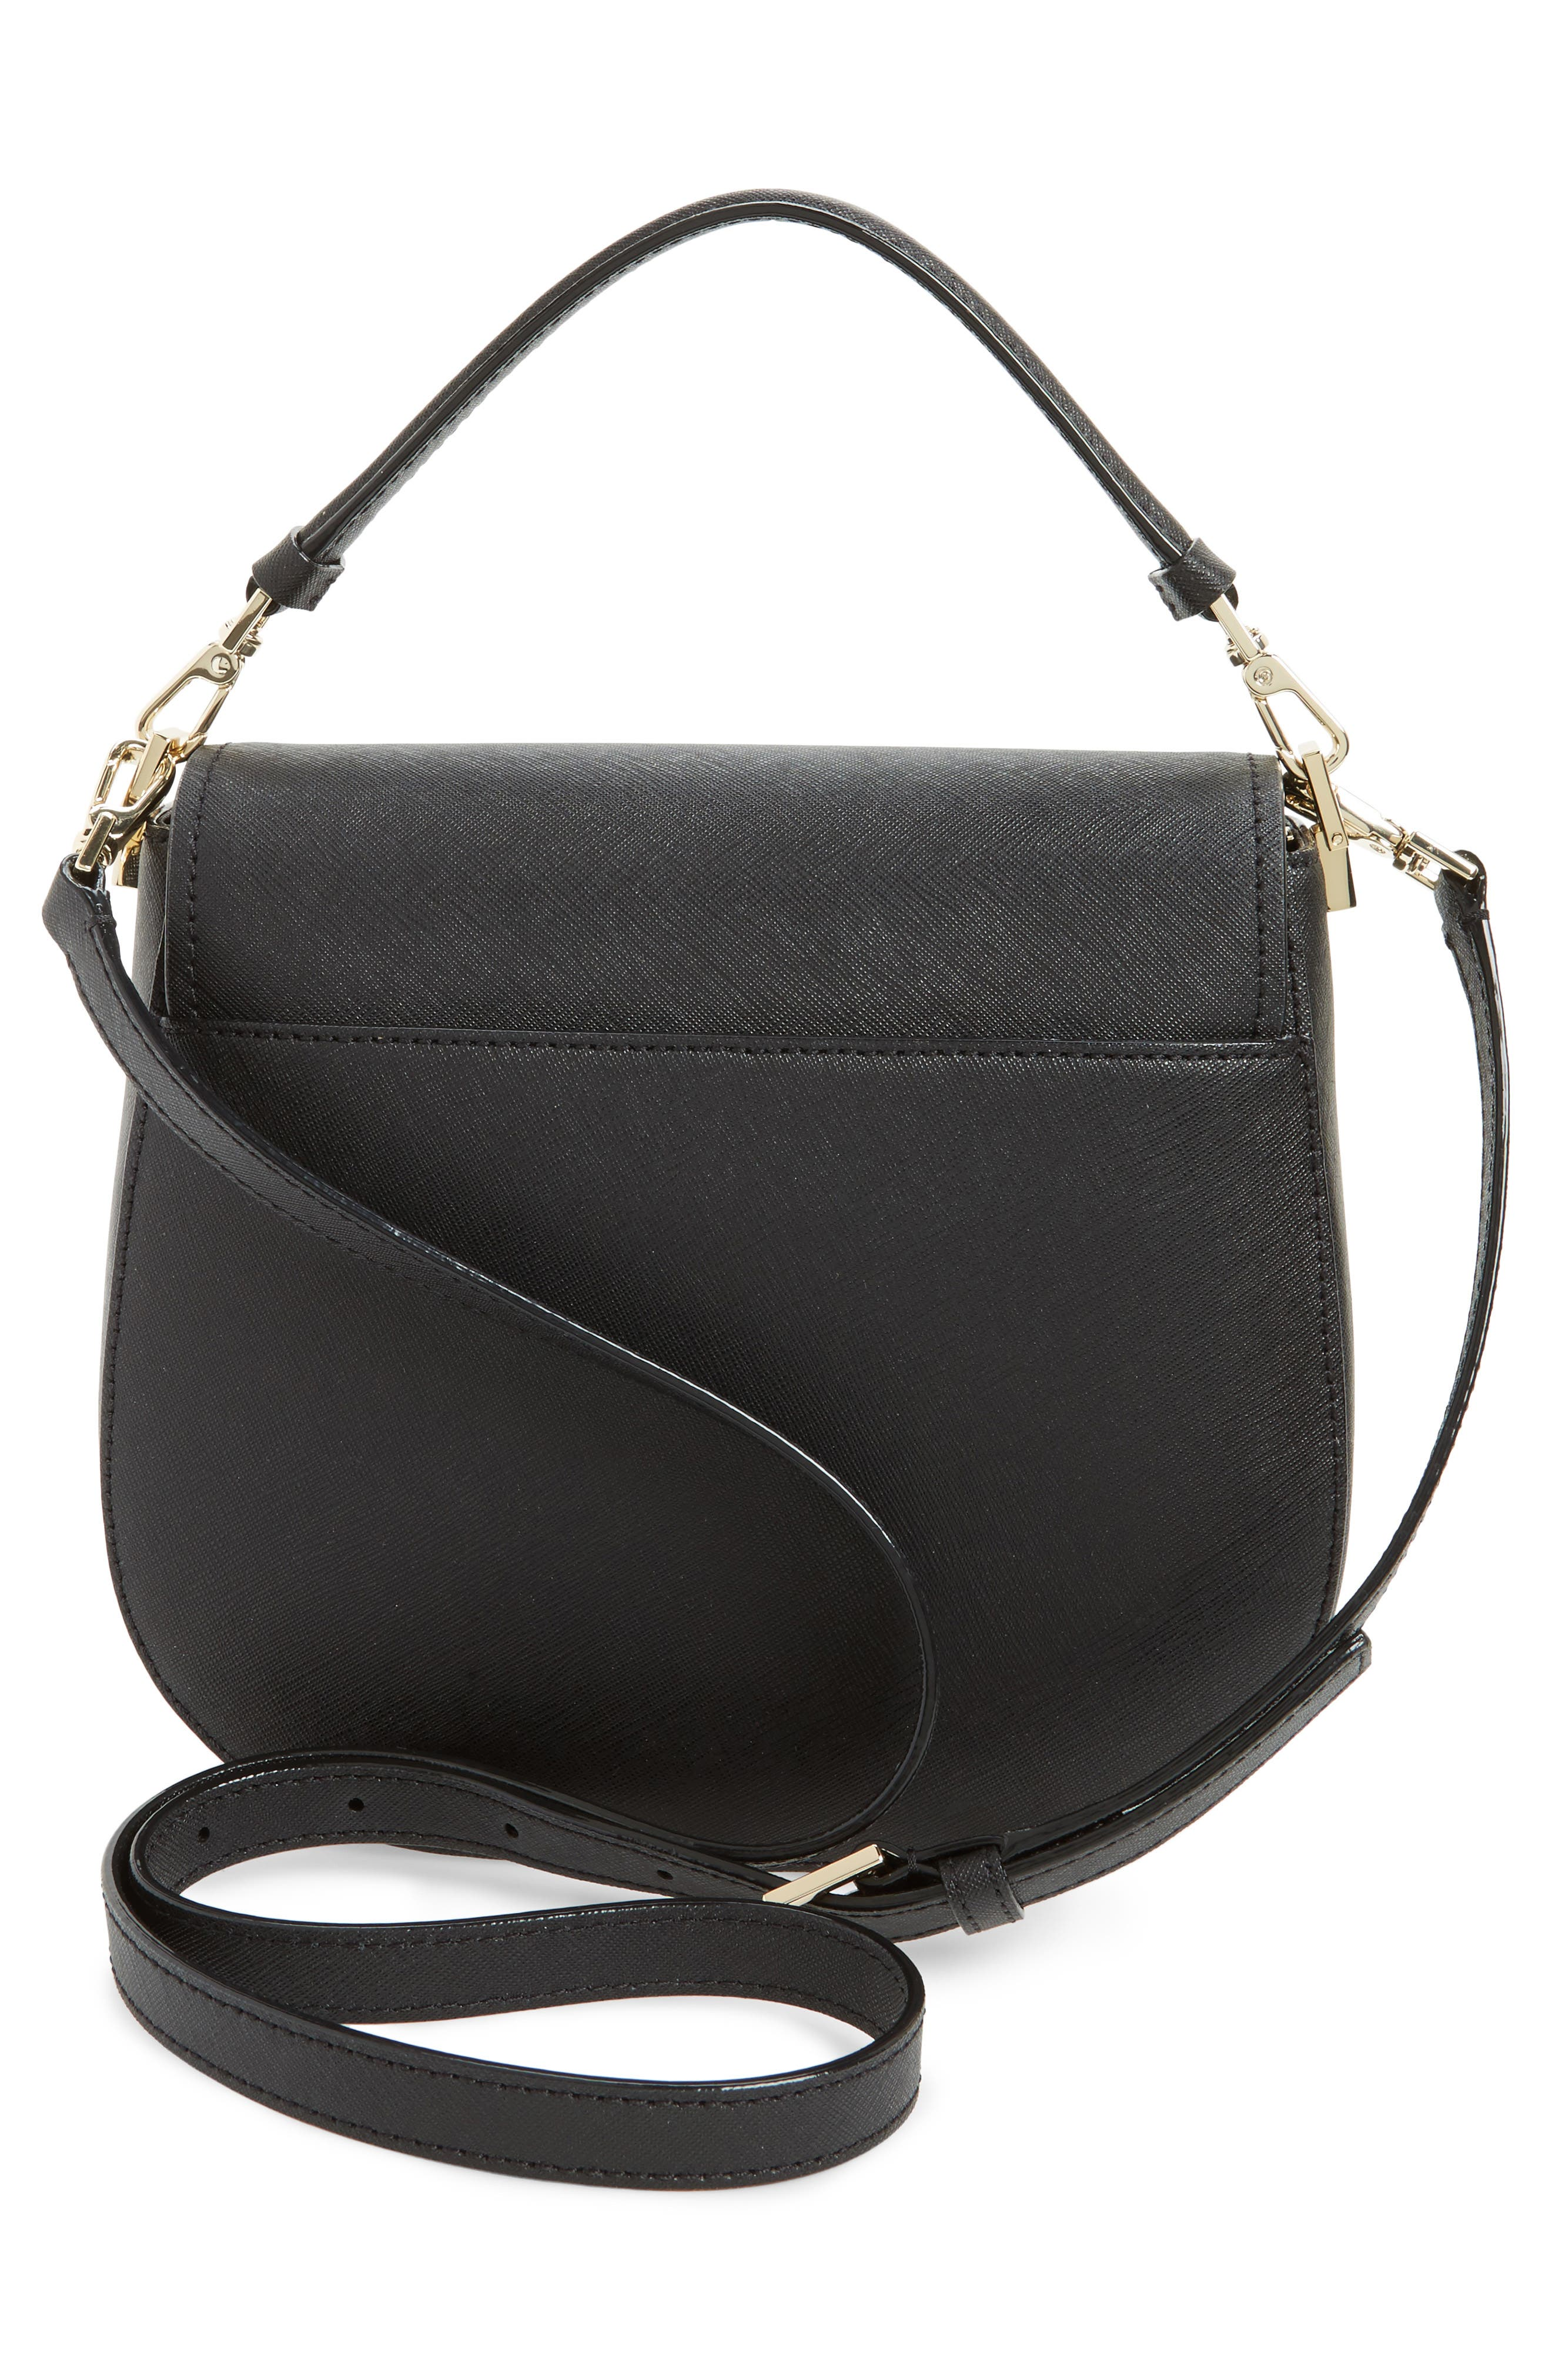 make it mine - byrdie leather saddle bag,                             Alternate thumbnail 3, color,                             001